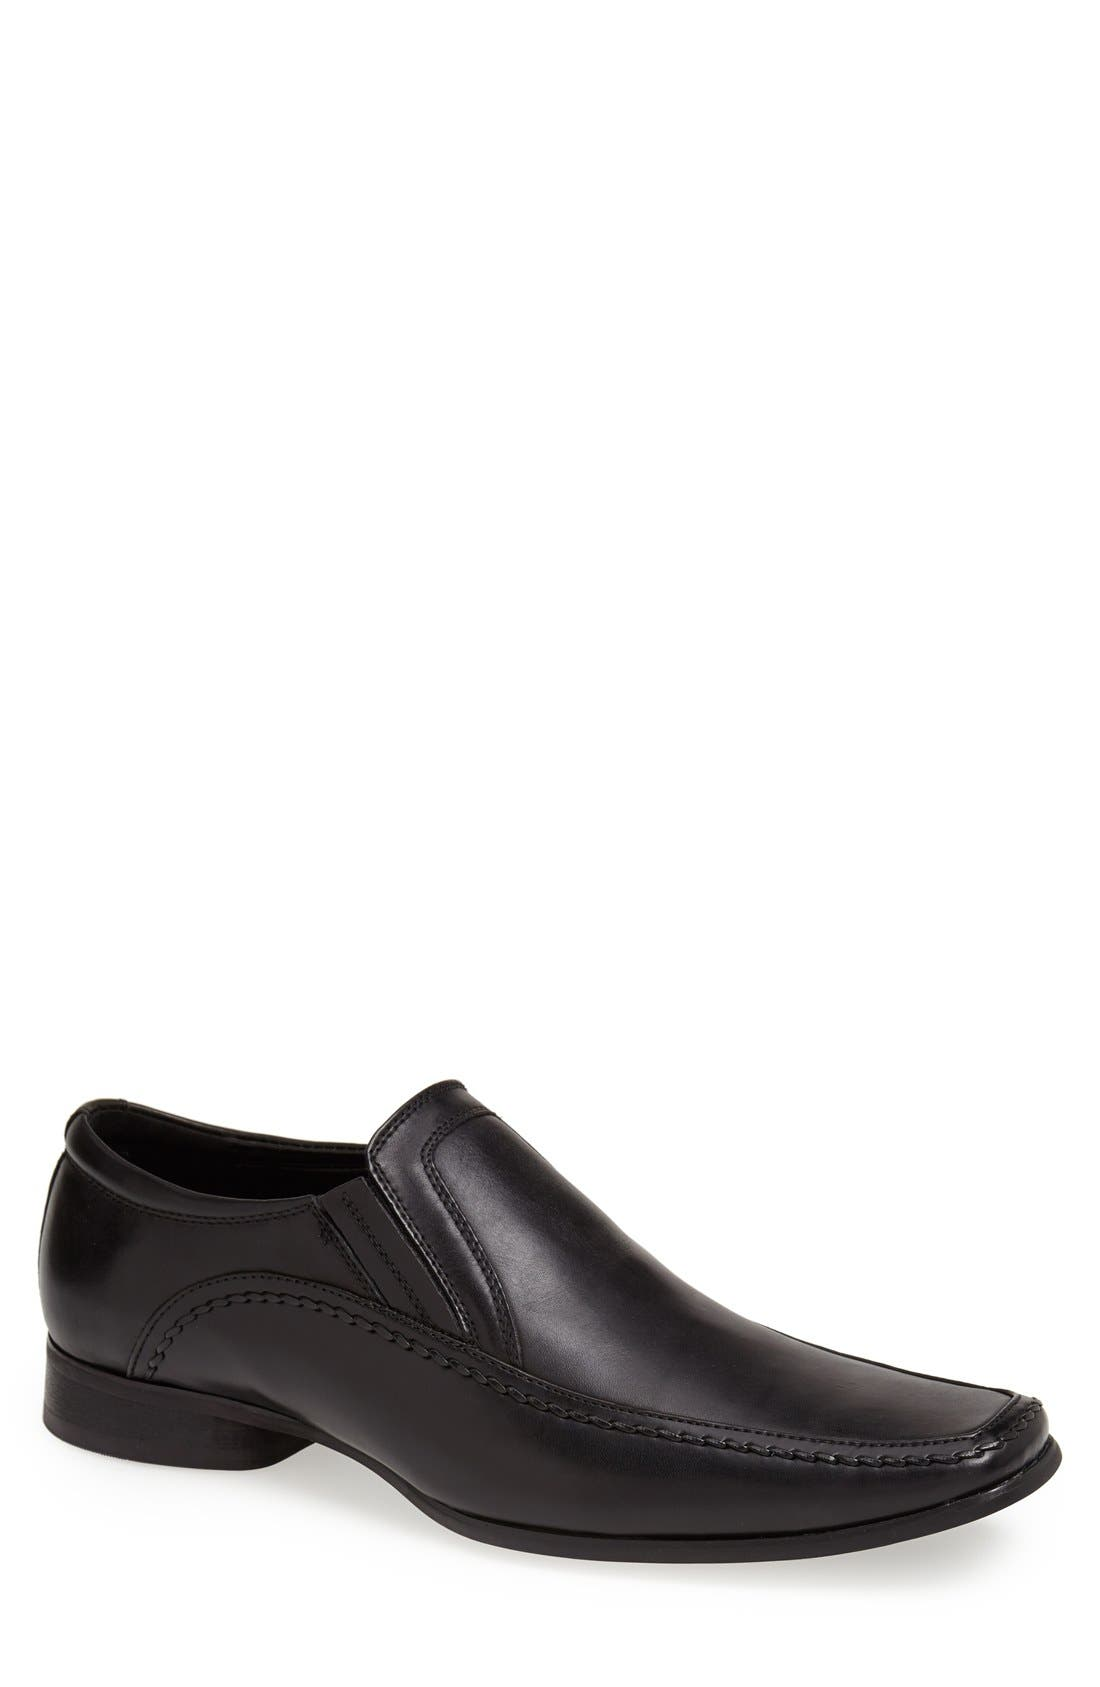 REACTION KENNETH COLE 'Key Note' Slip-On, Main, color, 001